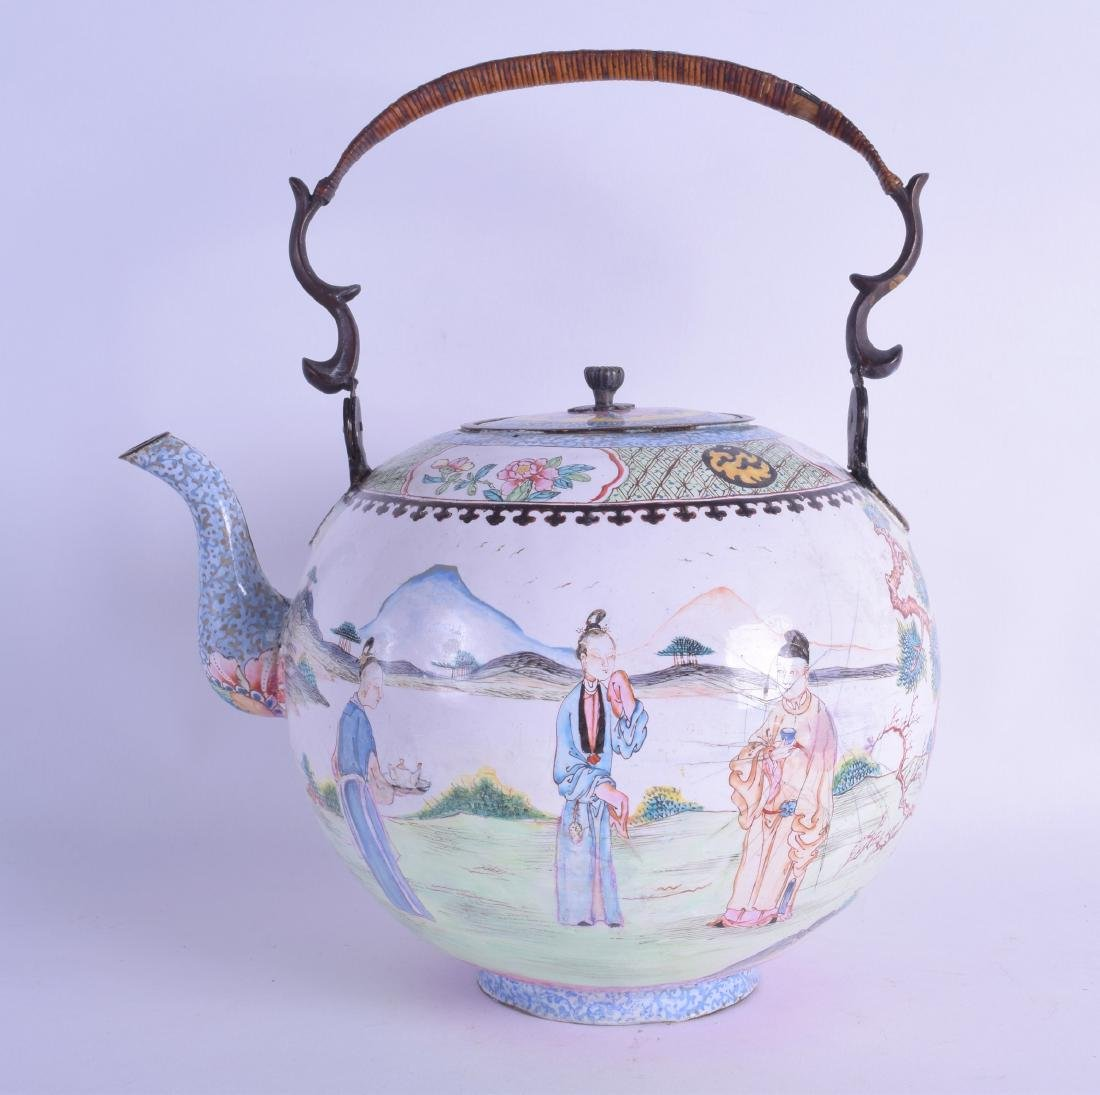 A RARE LARGE 18TH CENTURY CHINESE CANTON ENAMEL TEAPOT